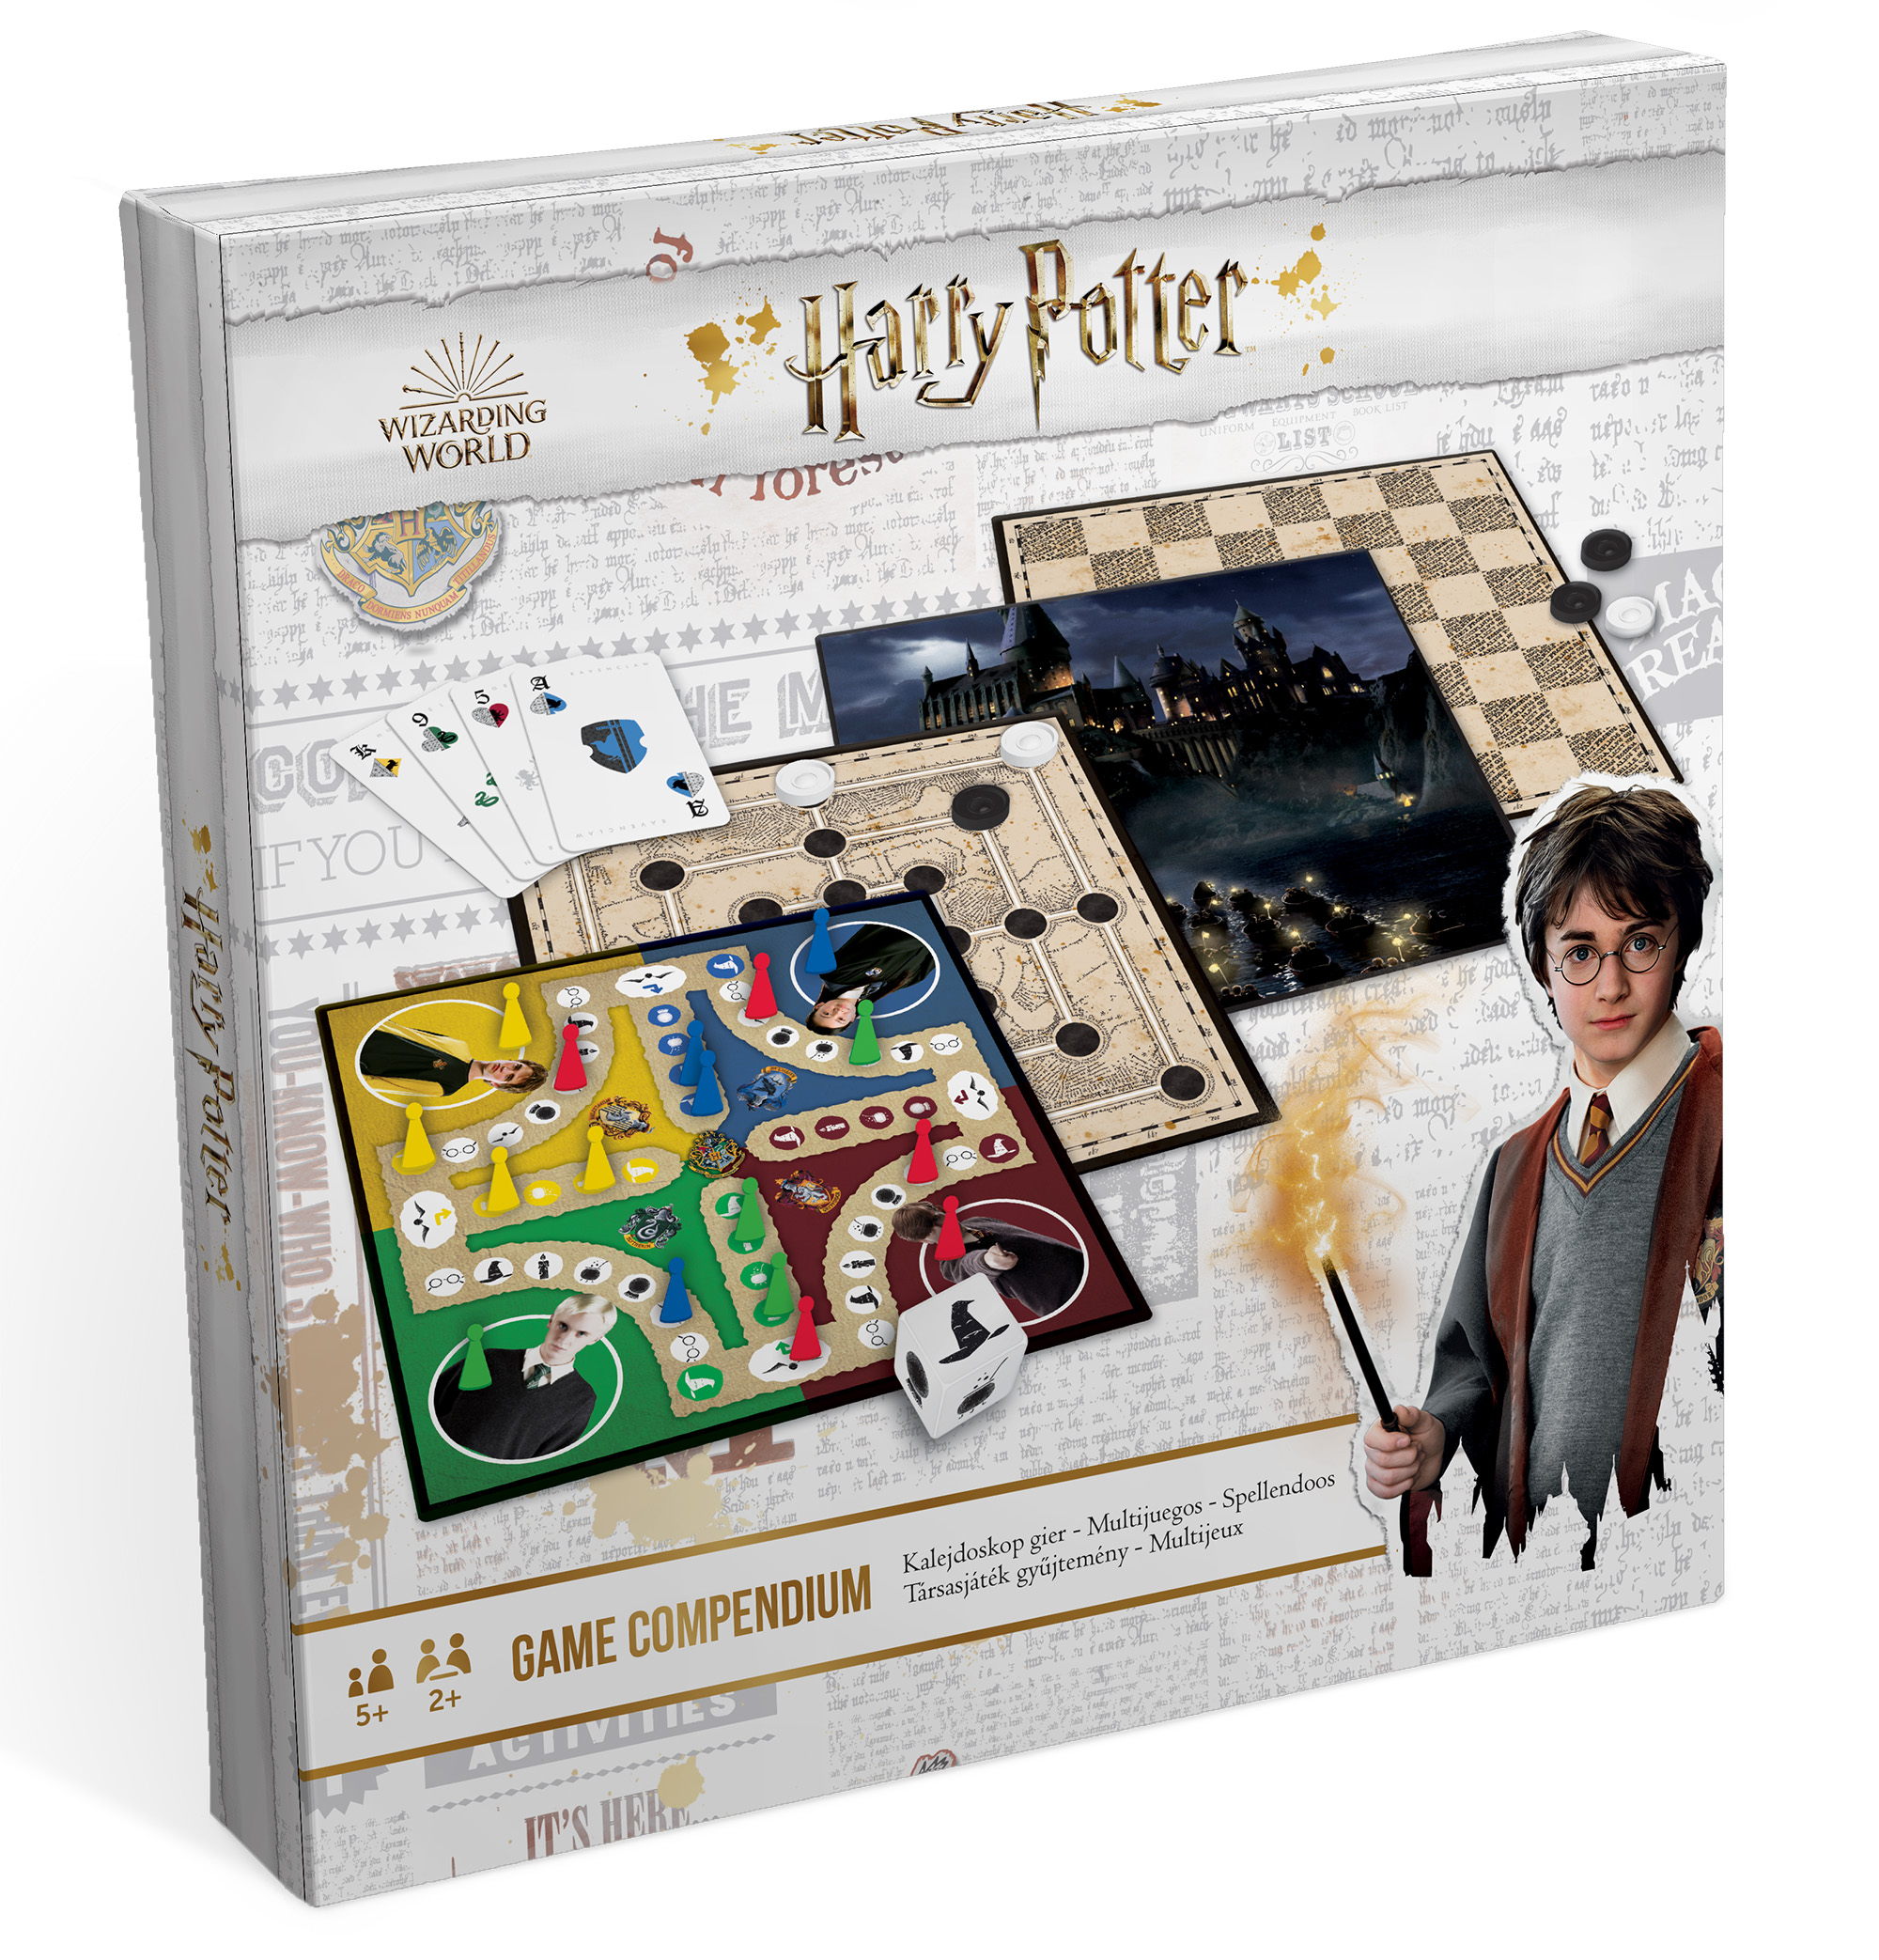 HARRY POTTER, multigames 3 Parchis Parchís boards, ladies, Mill and card deck with accessories set table family Game Room  - AliExpress